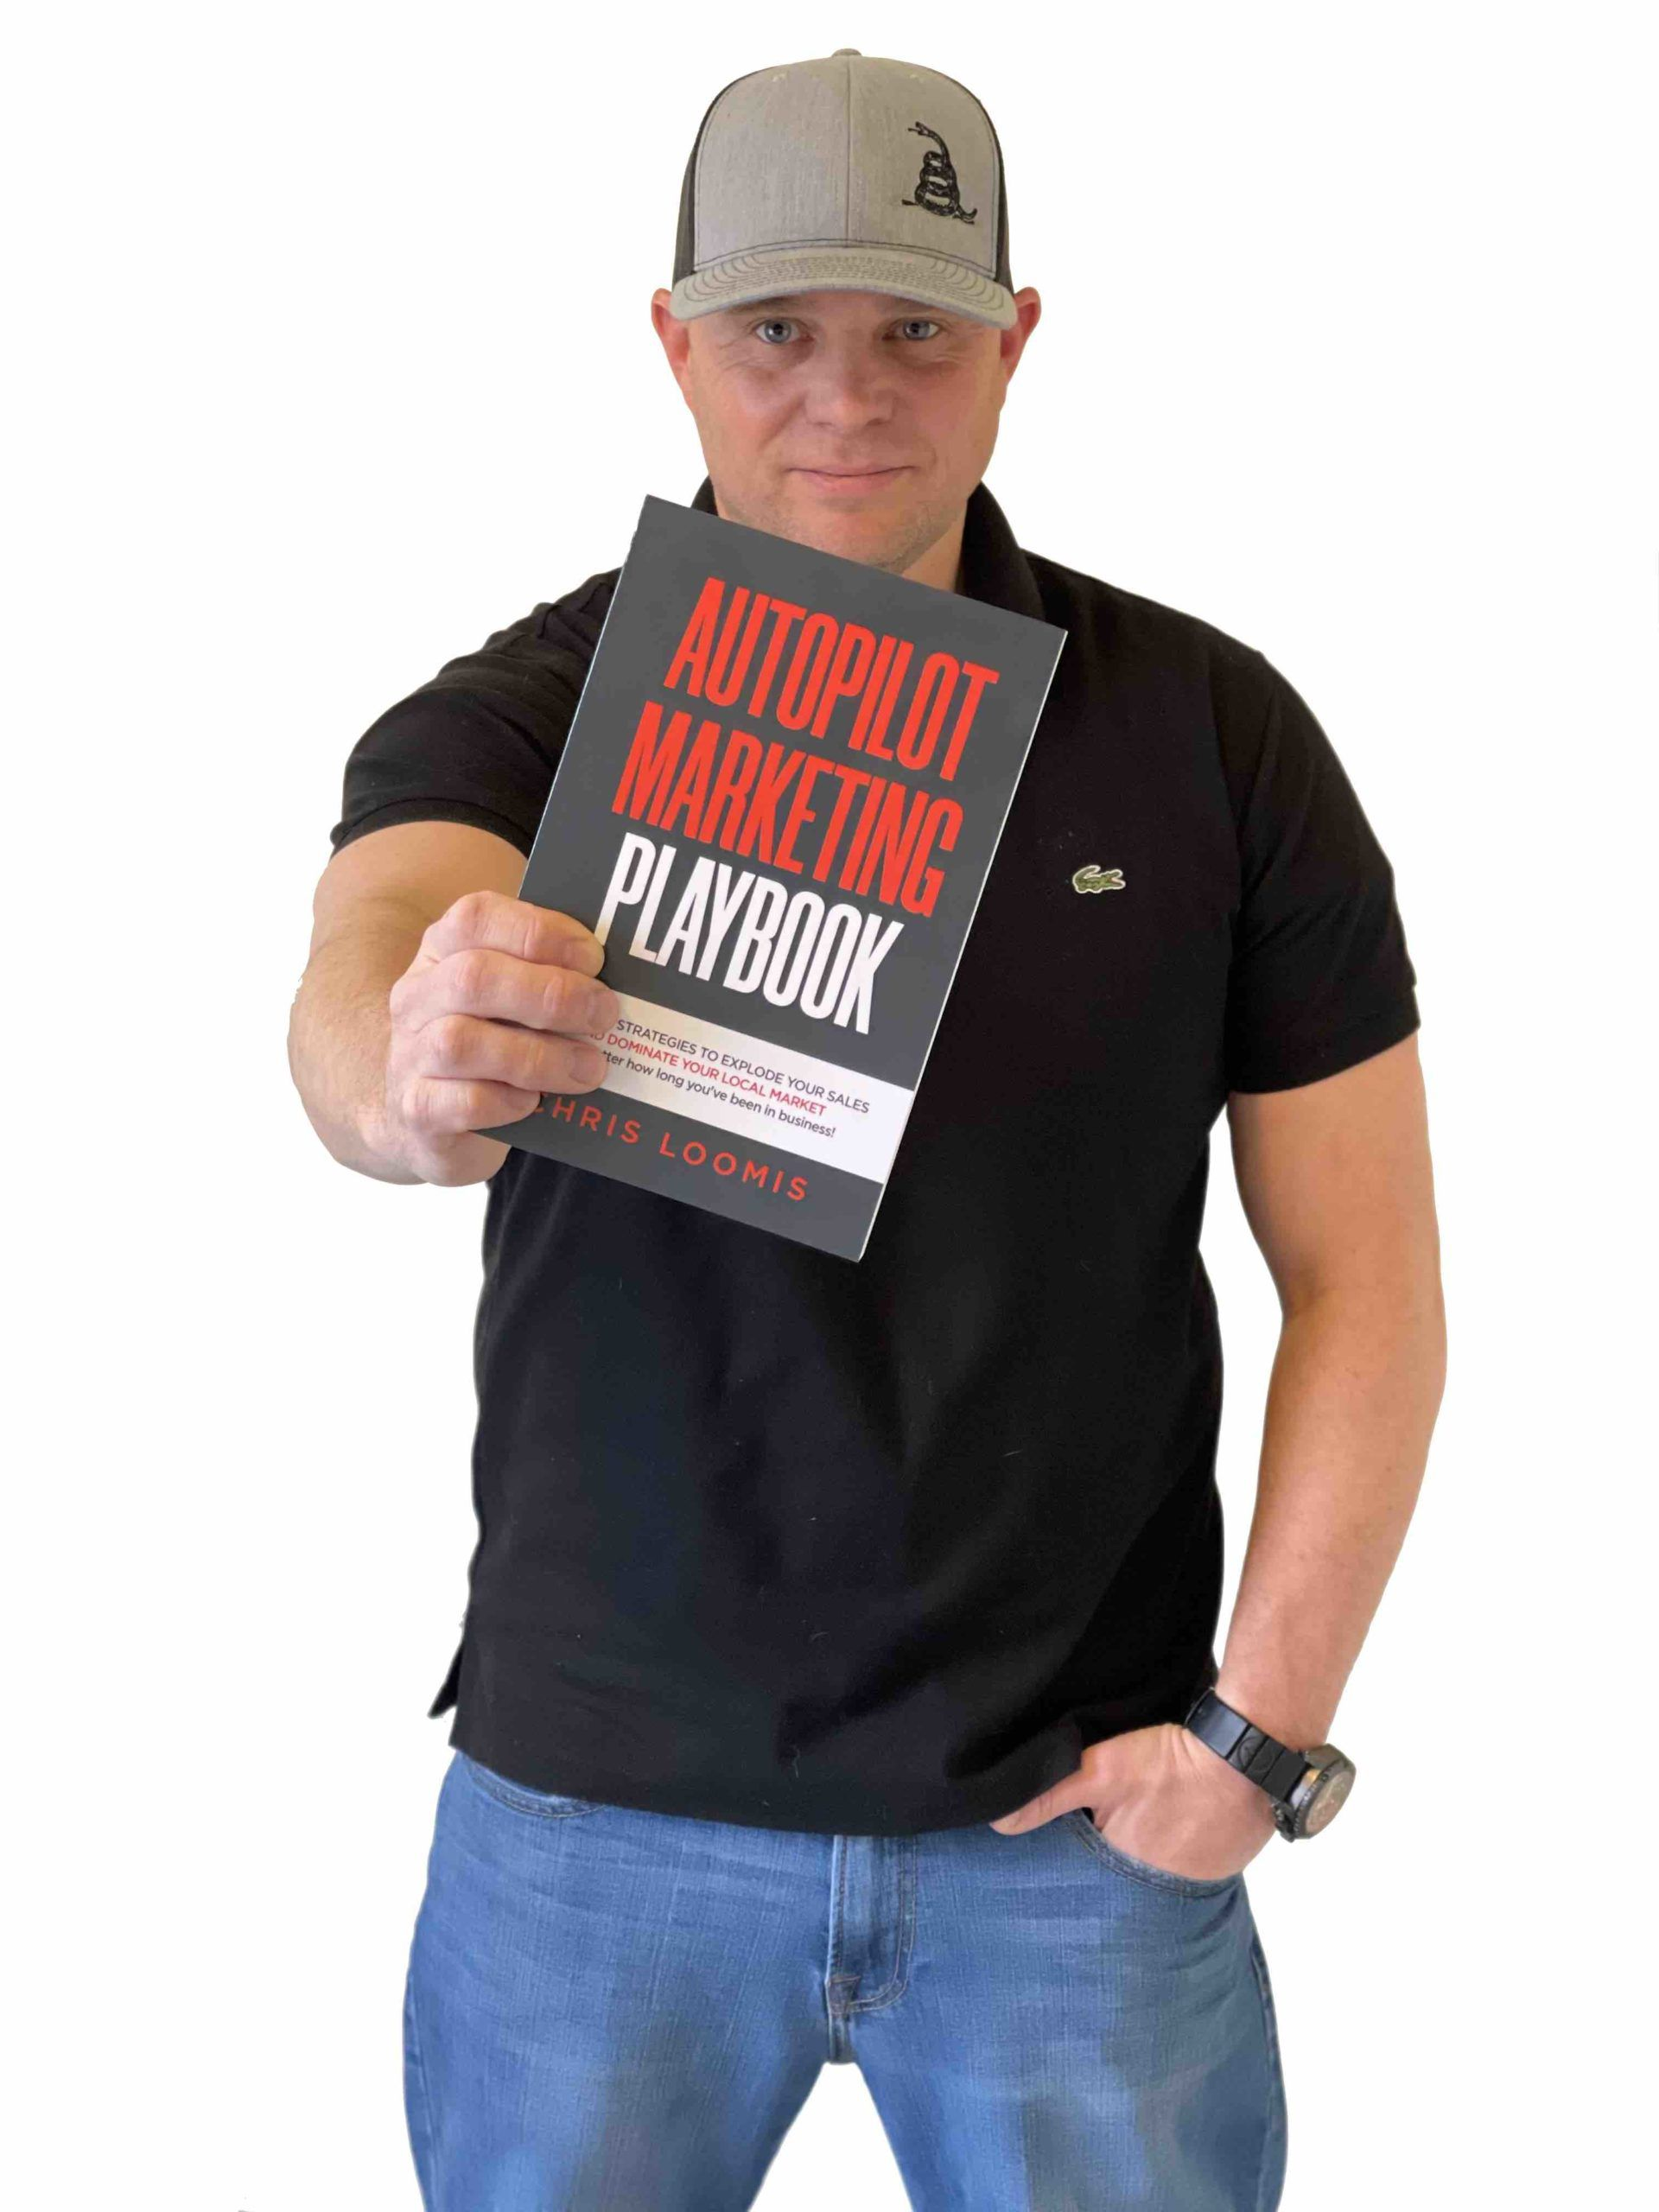 Chris Loomis' book Autopilot Marketing Playbook